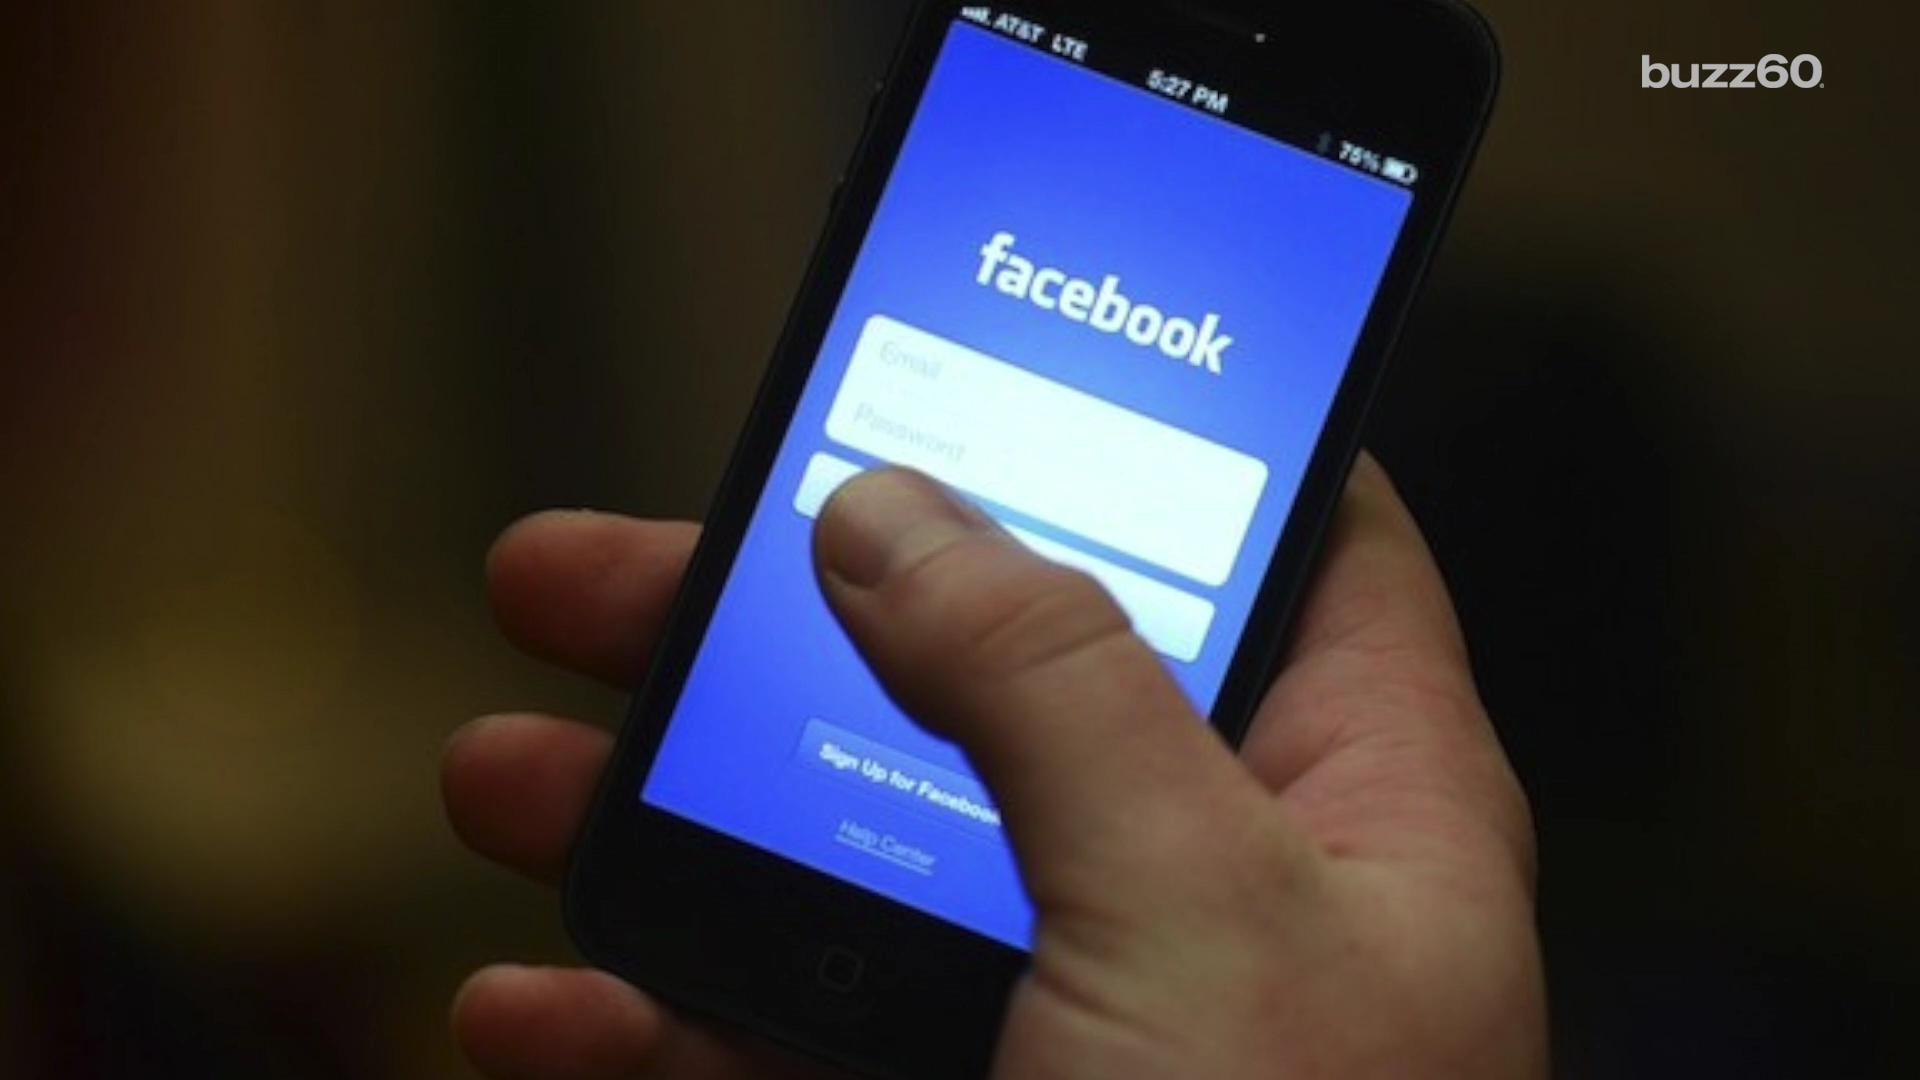 Facebook un-friending counts as workplace bullying